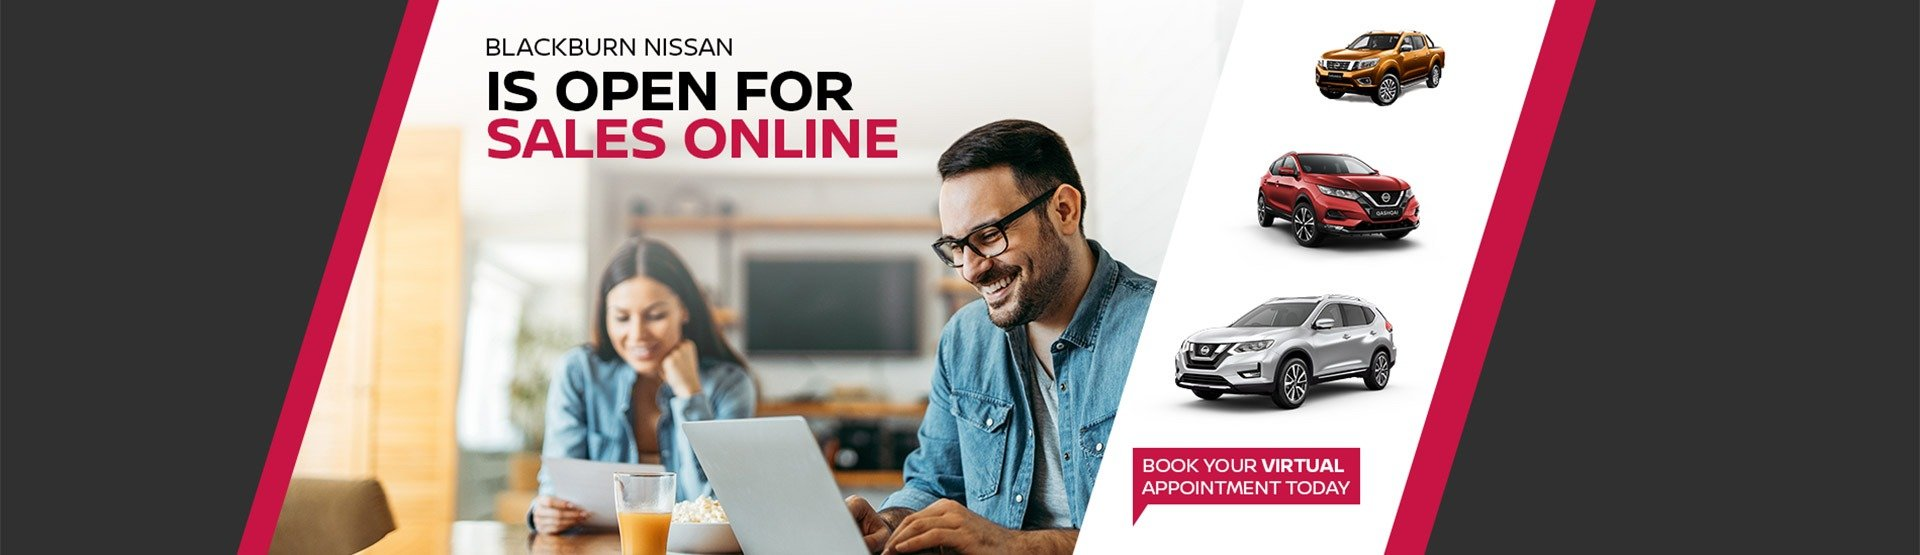 Blackburn Nissan Open for Online Sales